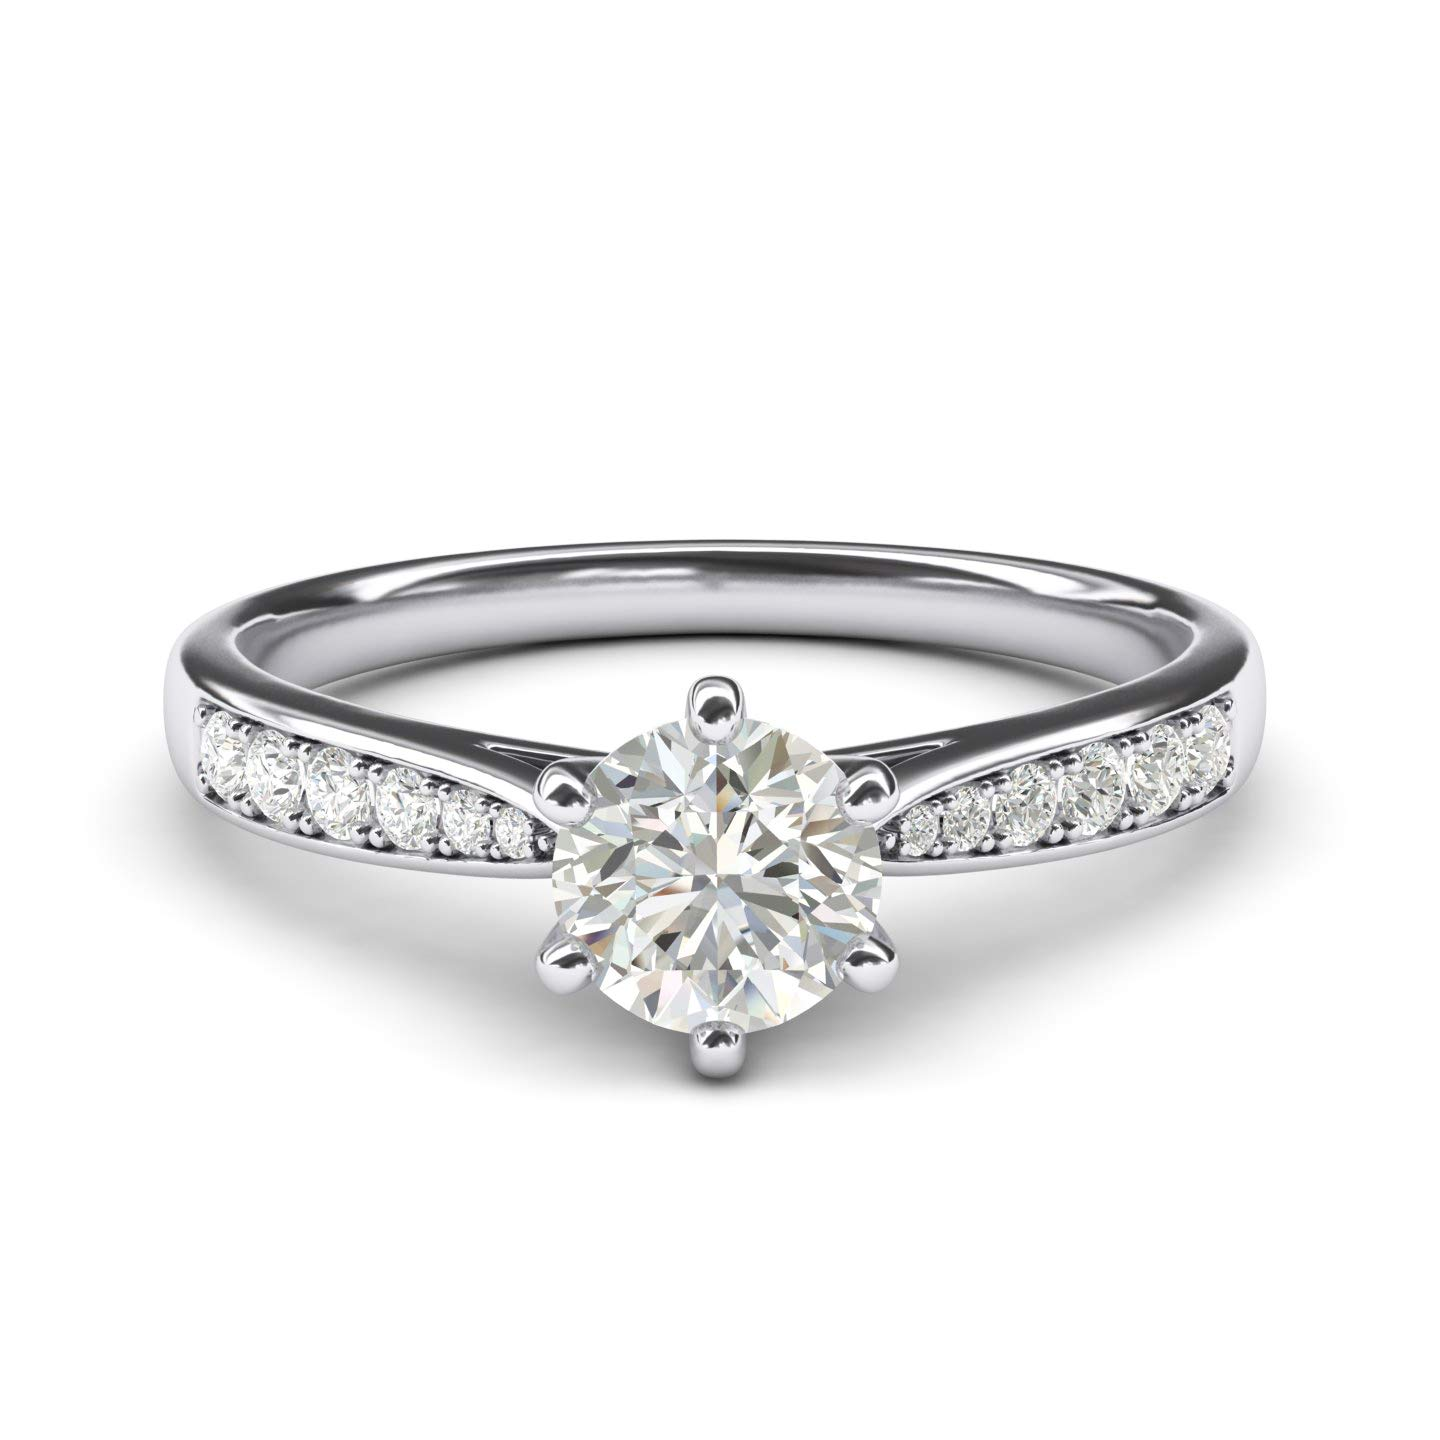 10k white gold 1.0 CT Classic 6-Prong Simulated Diamond Engagement Ring Graduated Side Stones Promise Bridal Ring (6) by THELANDA